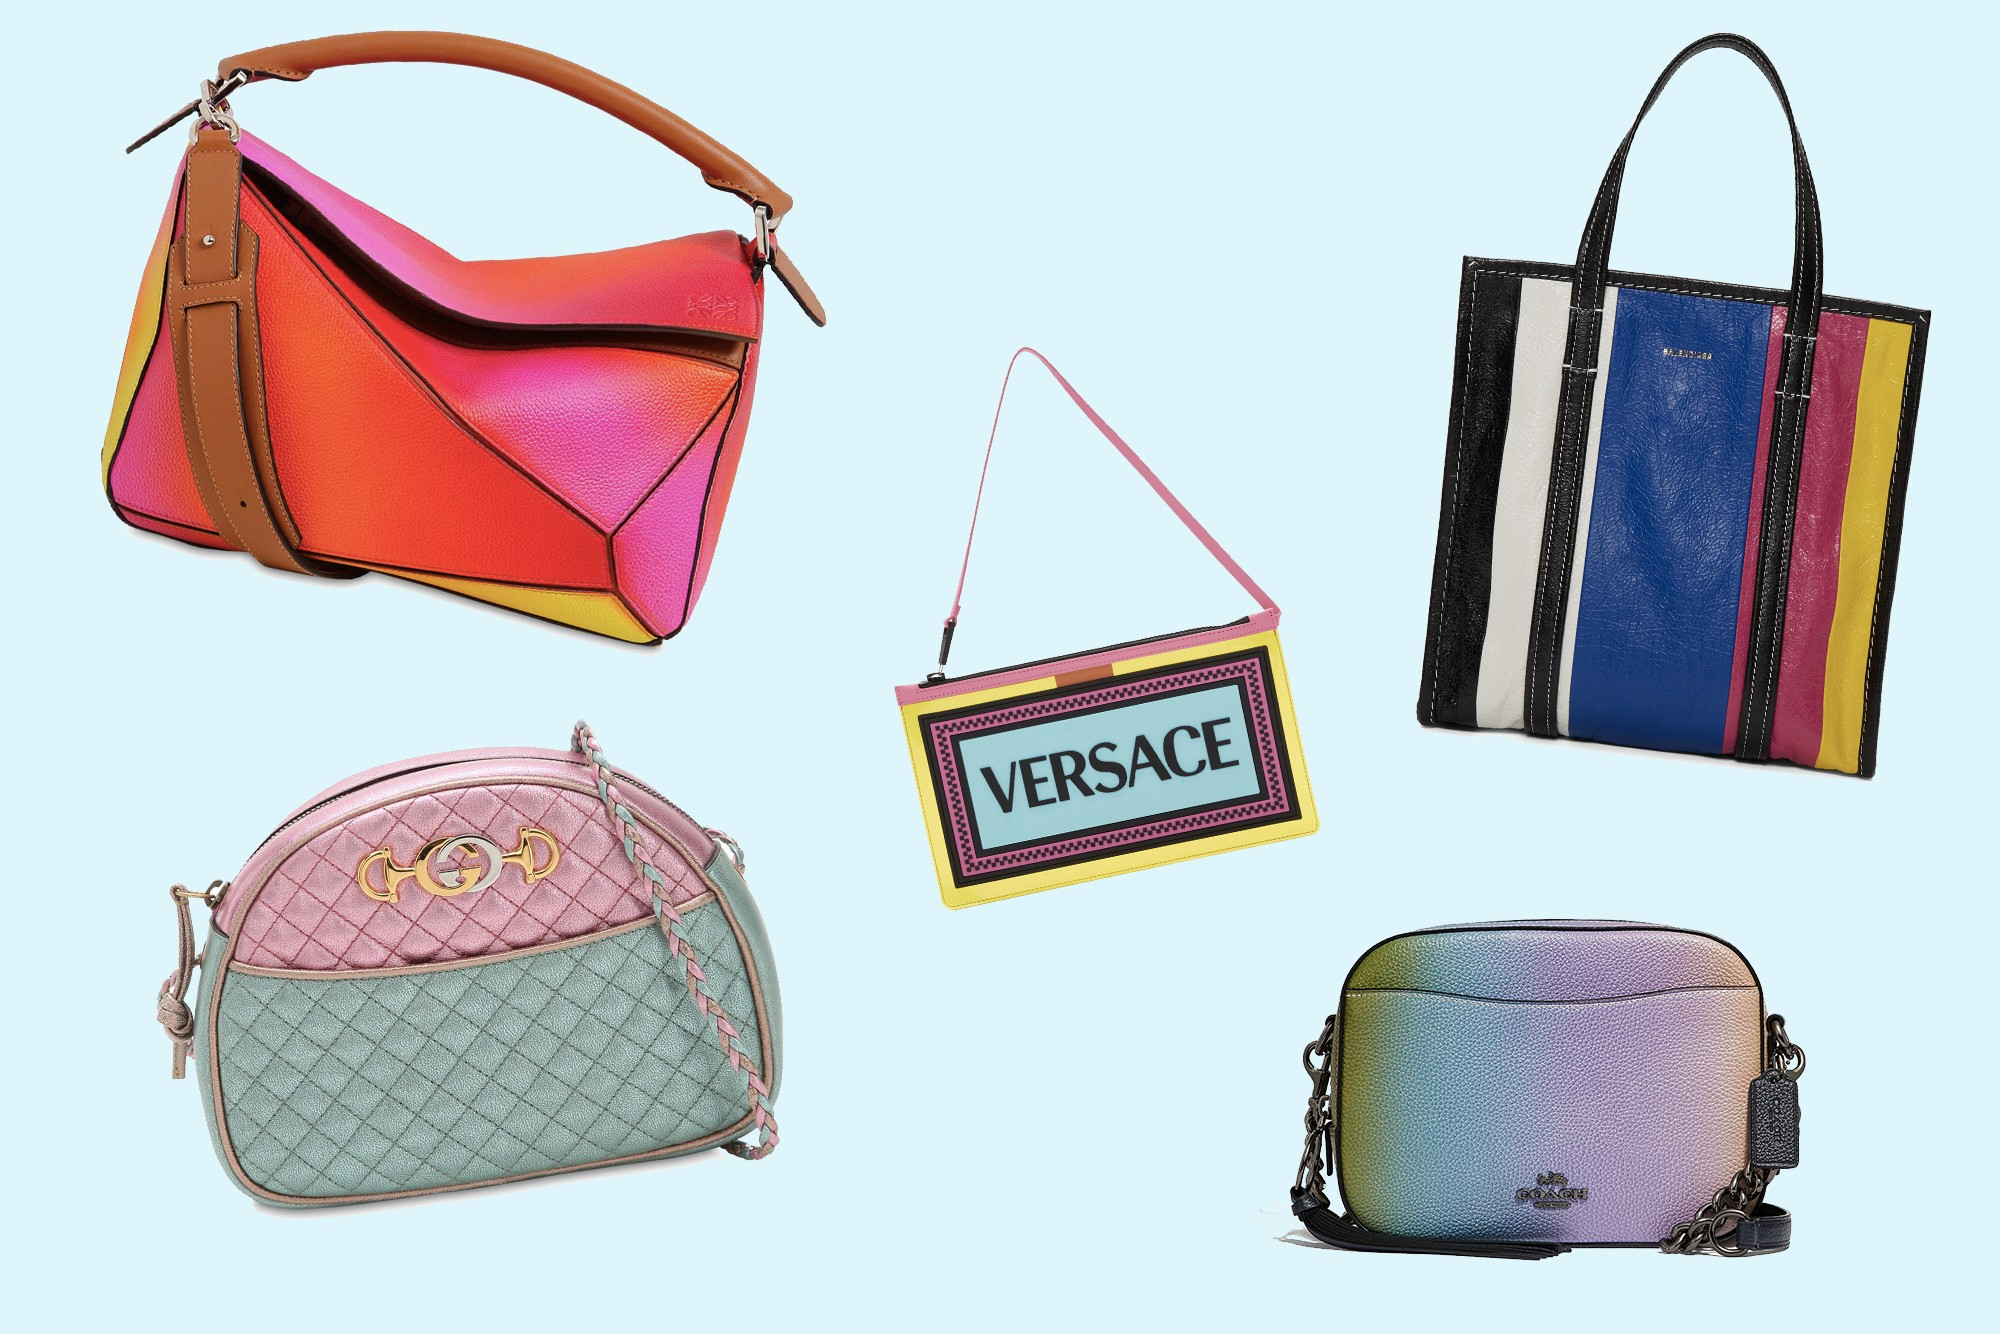 Best Bags for Spring Balenciaga, Gucci, Loewe